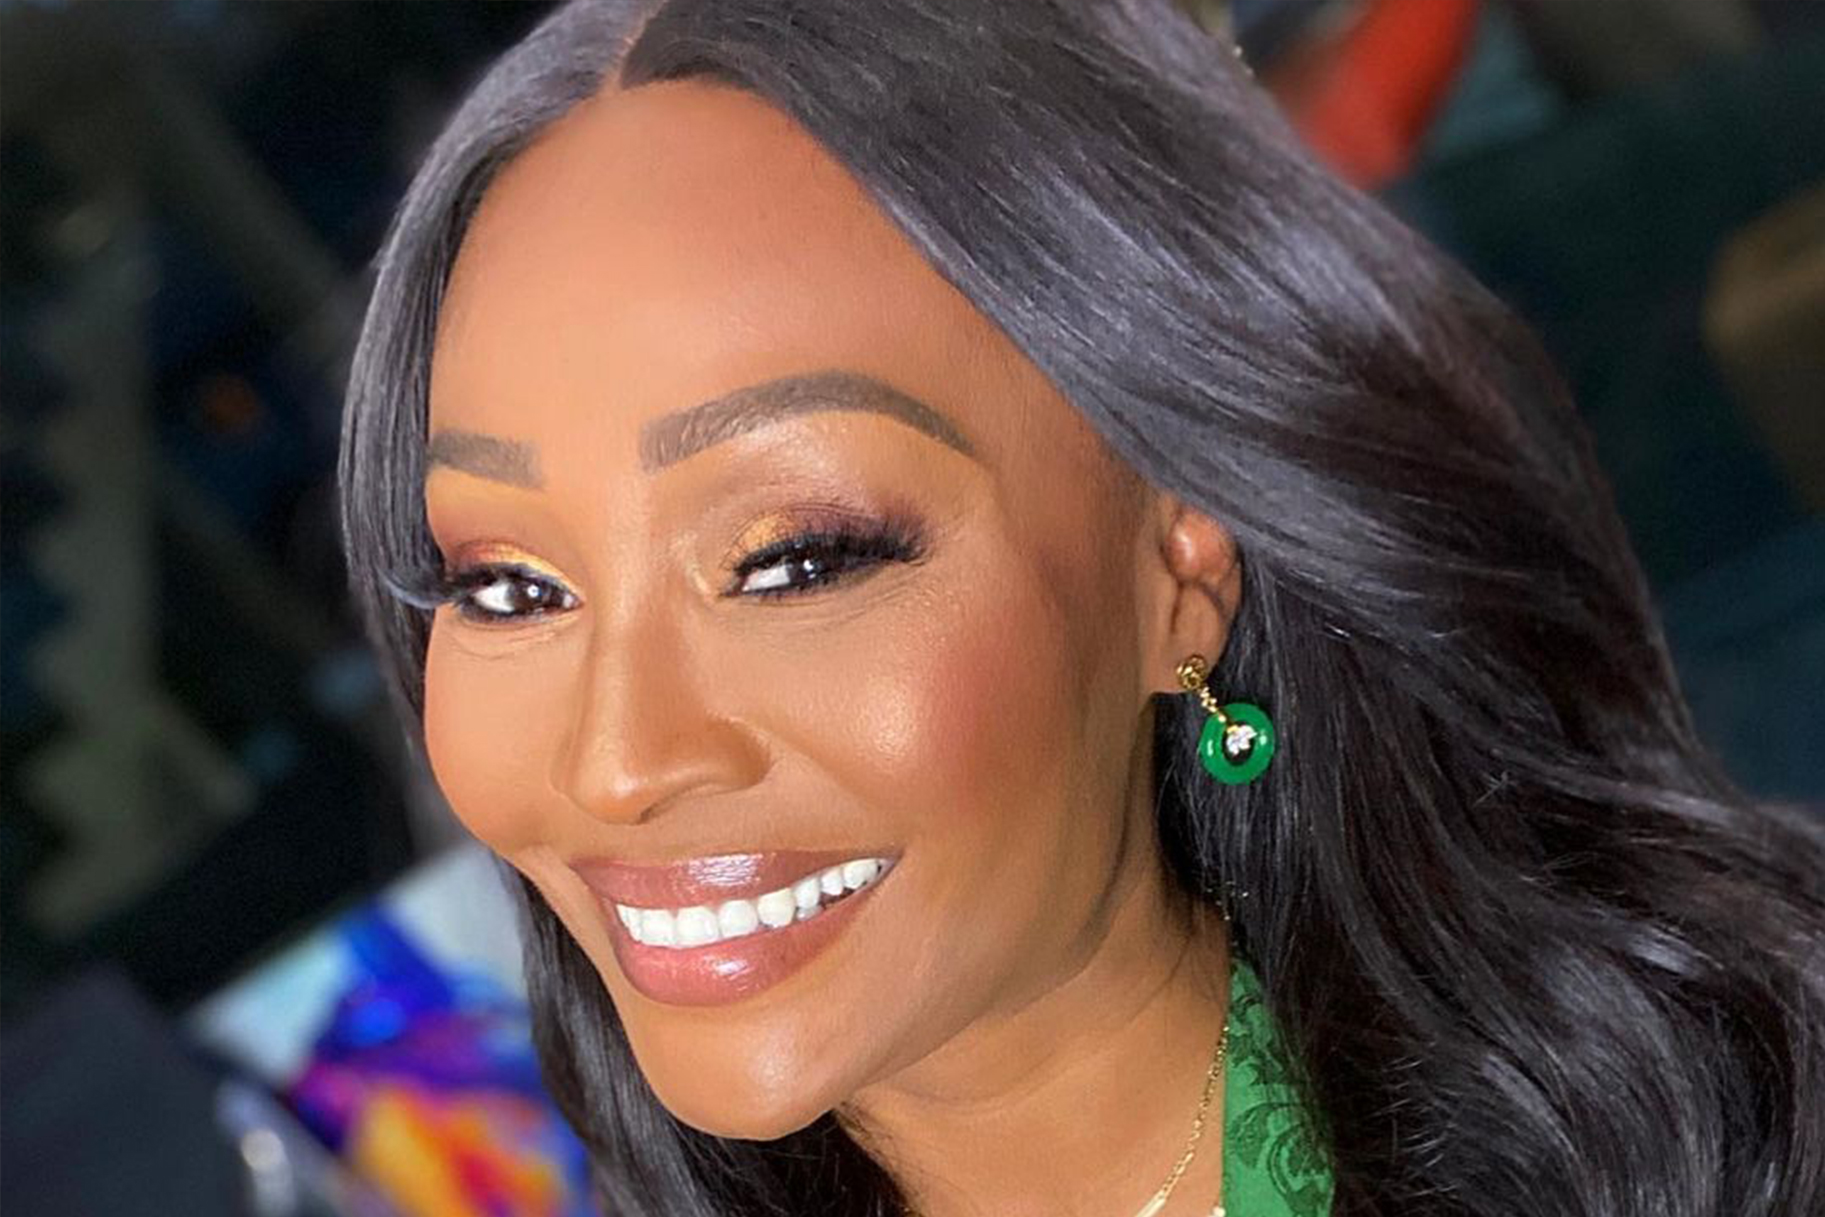 cynthia-bailey-continues-to-blow-fans-minds-with-new-pics-following-her-54th-birthday